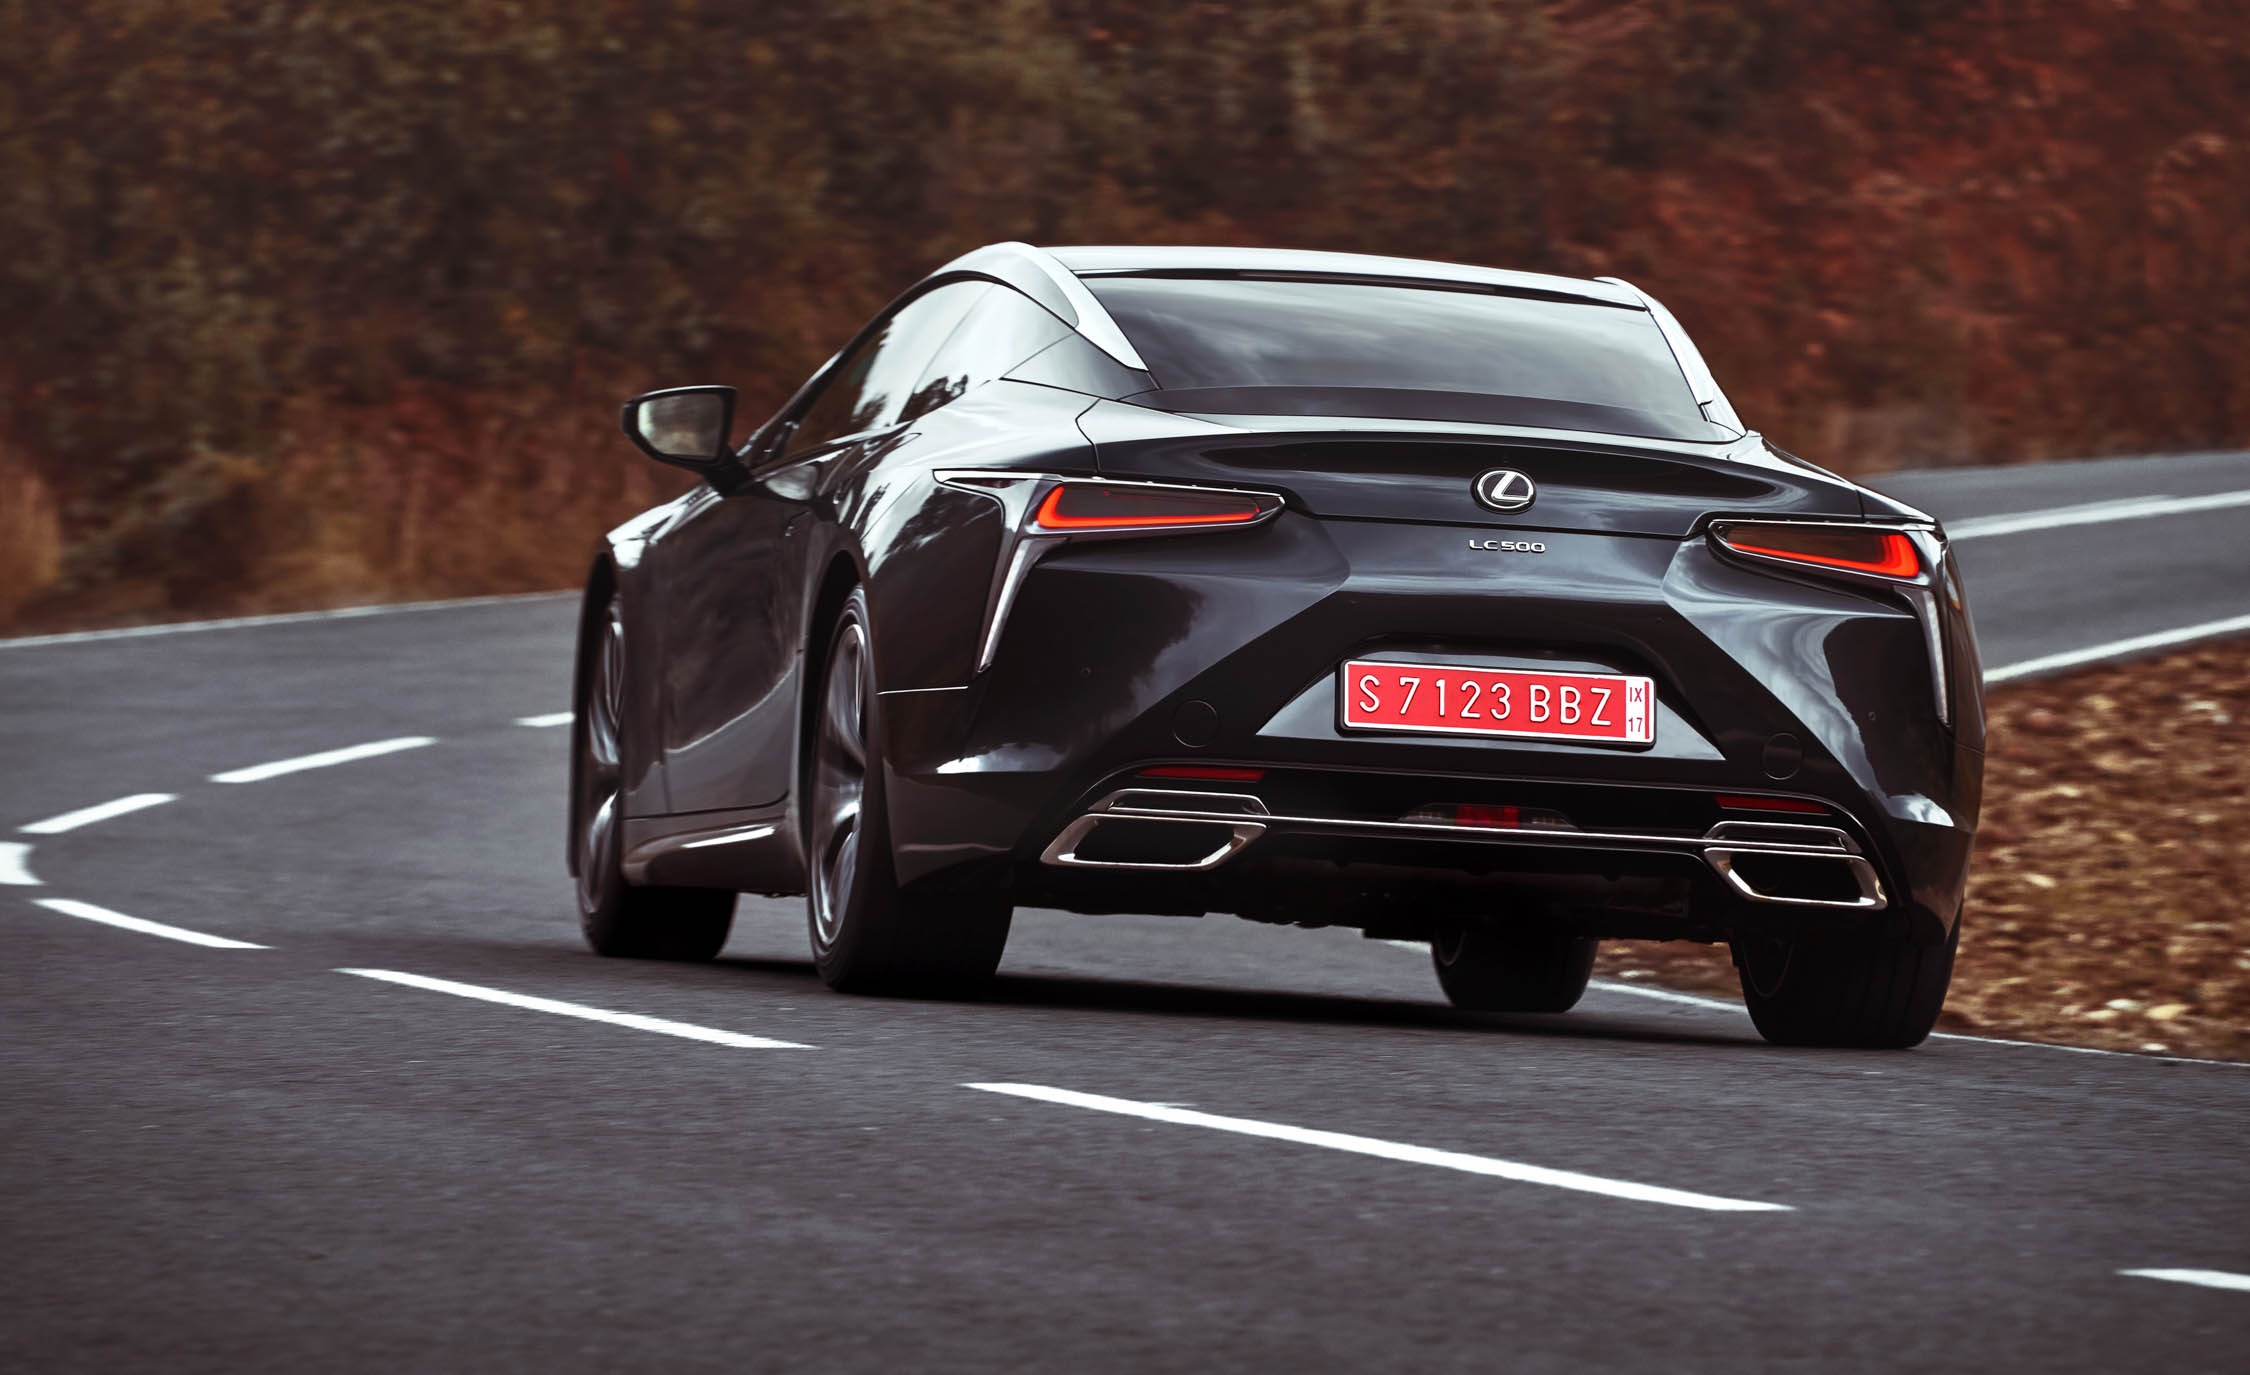 2018 Lexus Lc 500 Black Test Drive Rear (View 66 of 84)